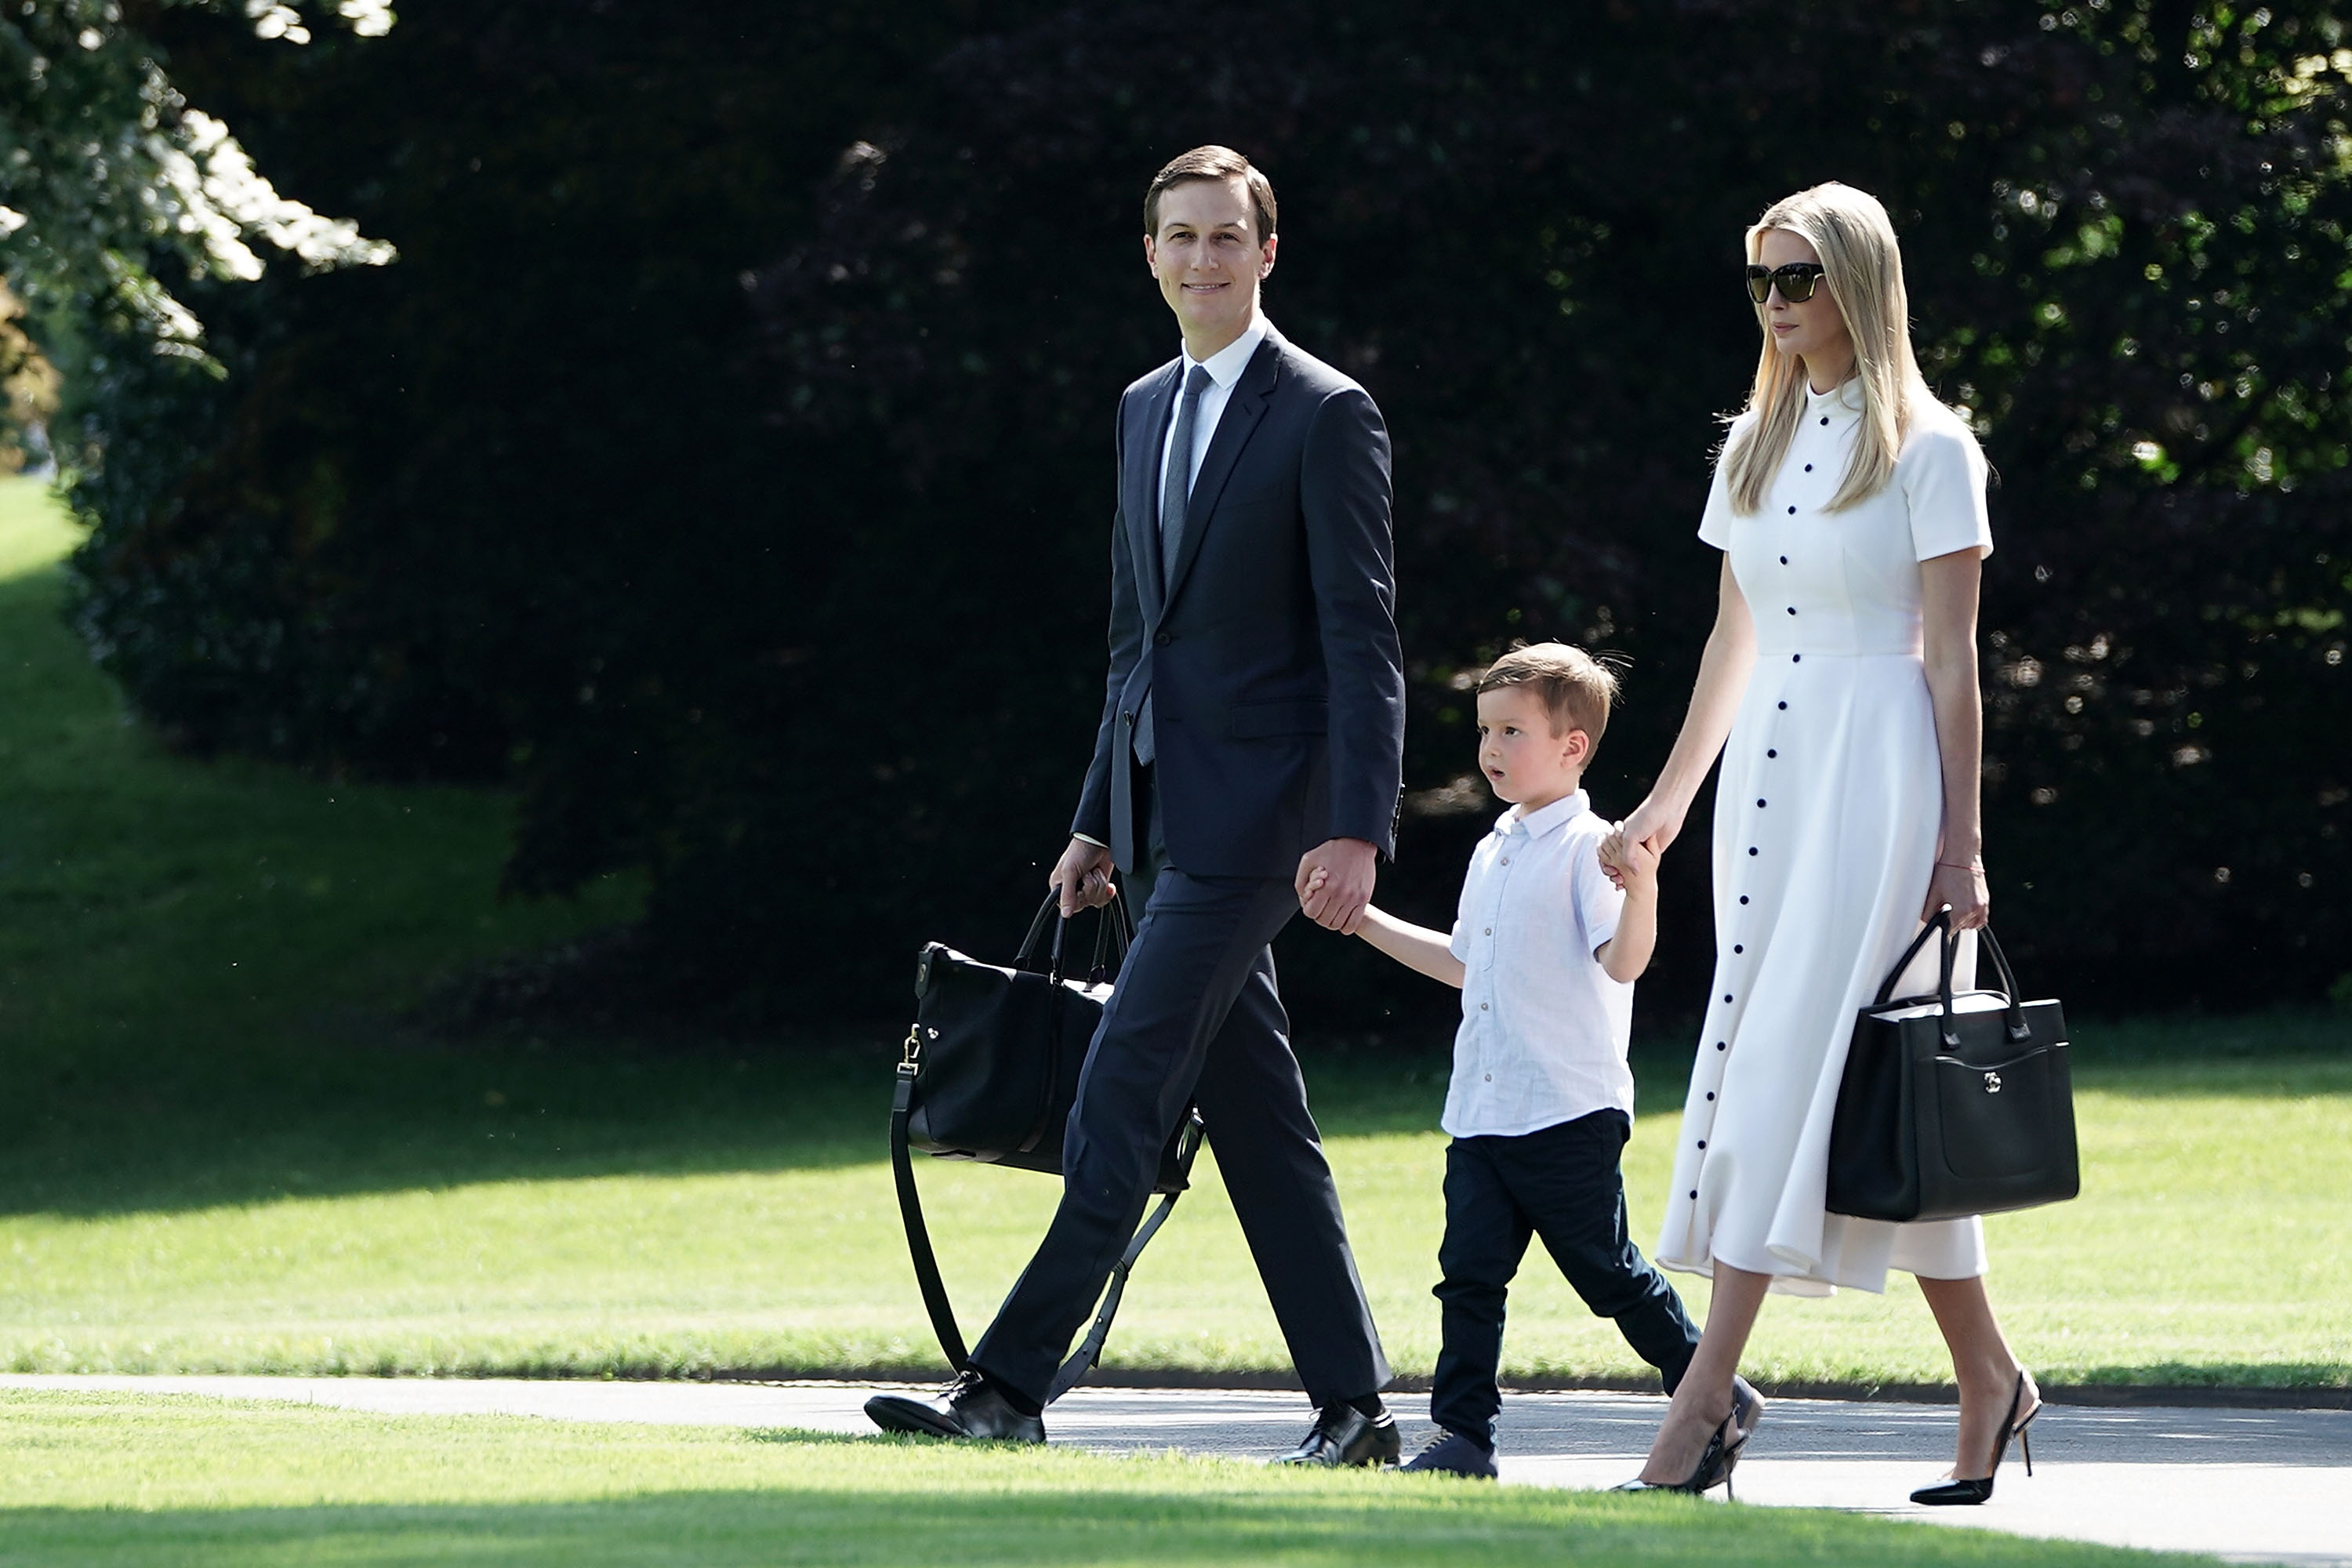 Ivanka Trump (R), White House senior adviser and daughter of President Donald Trump, walks with her husband Jared Kushner (L) and their son Joseph Kushner (2nd L) on the South Lawn of the White House prior to a Marine One departure June 29, 2018 in Washington, DC.